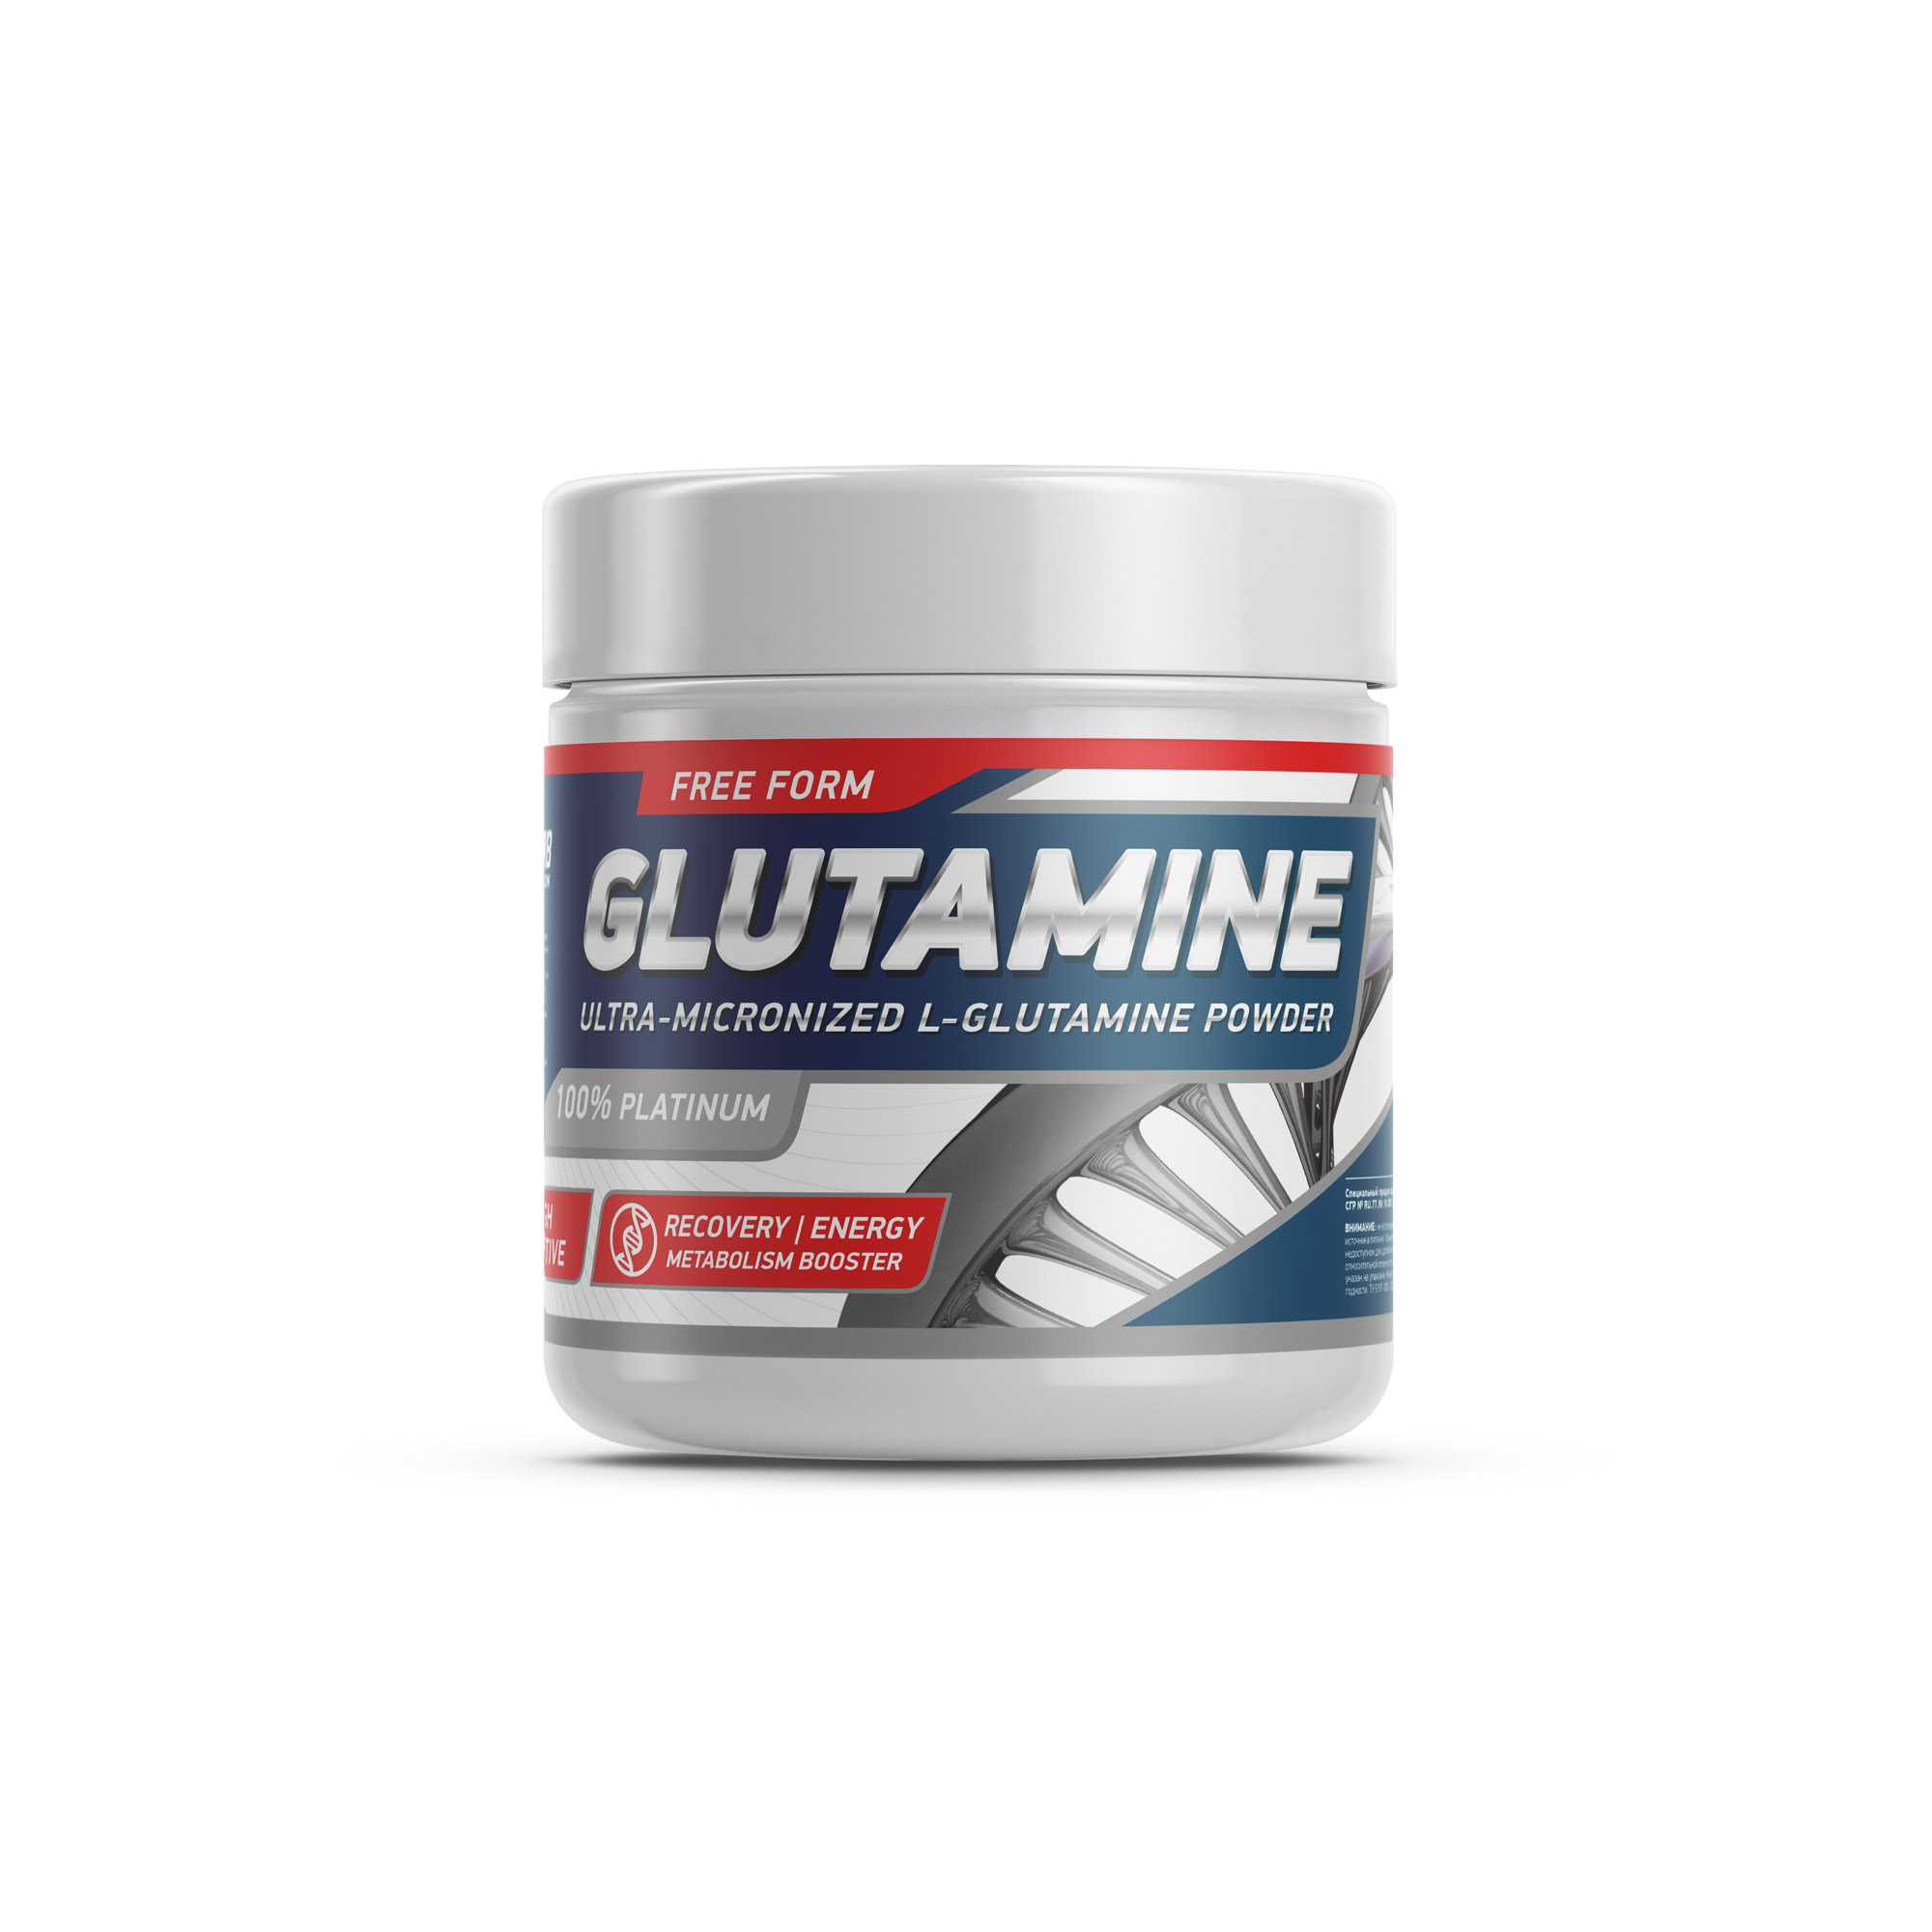 Glutamine Powder - Глютамин, арт: 4345